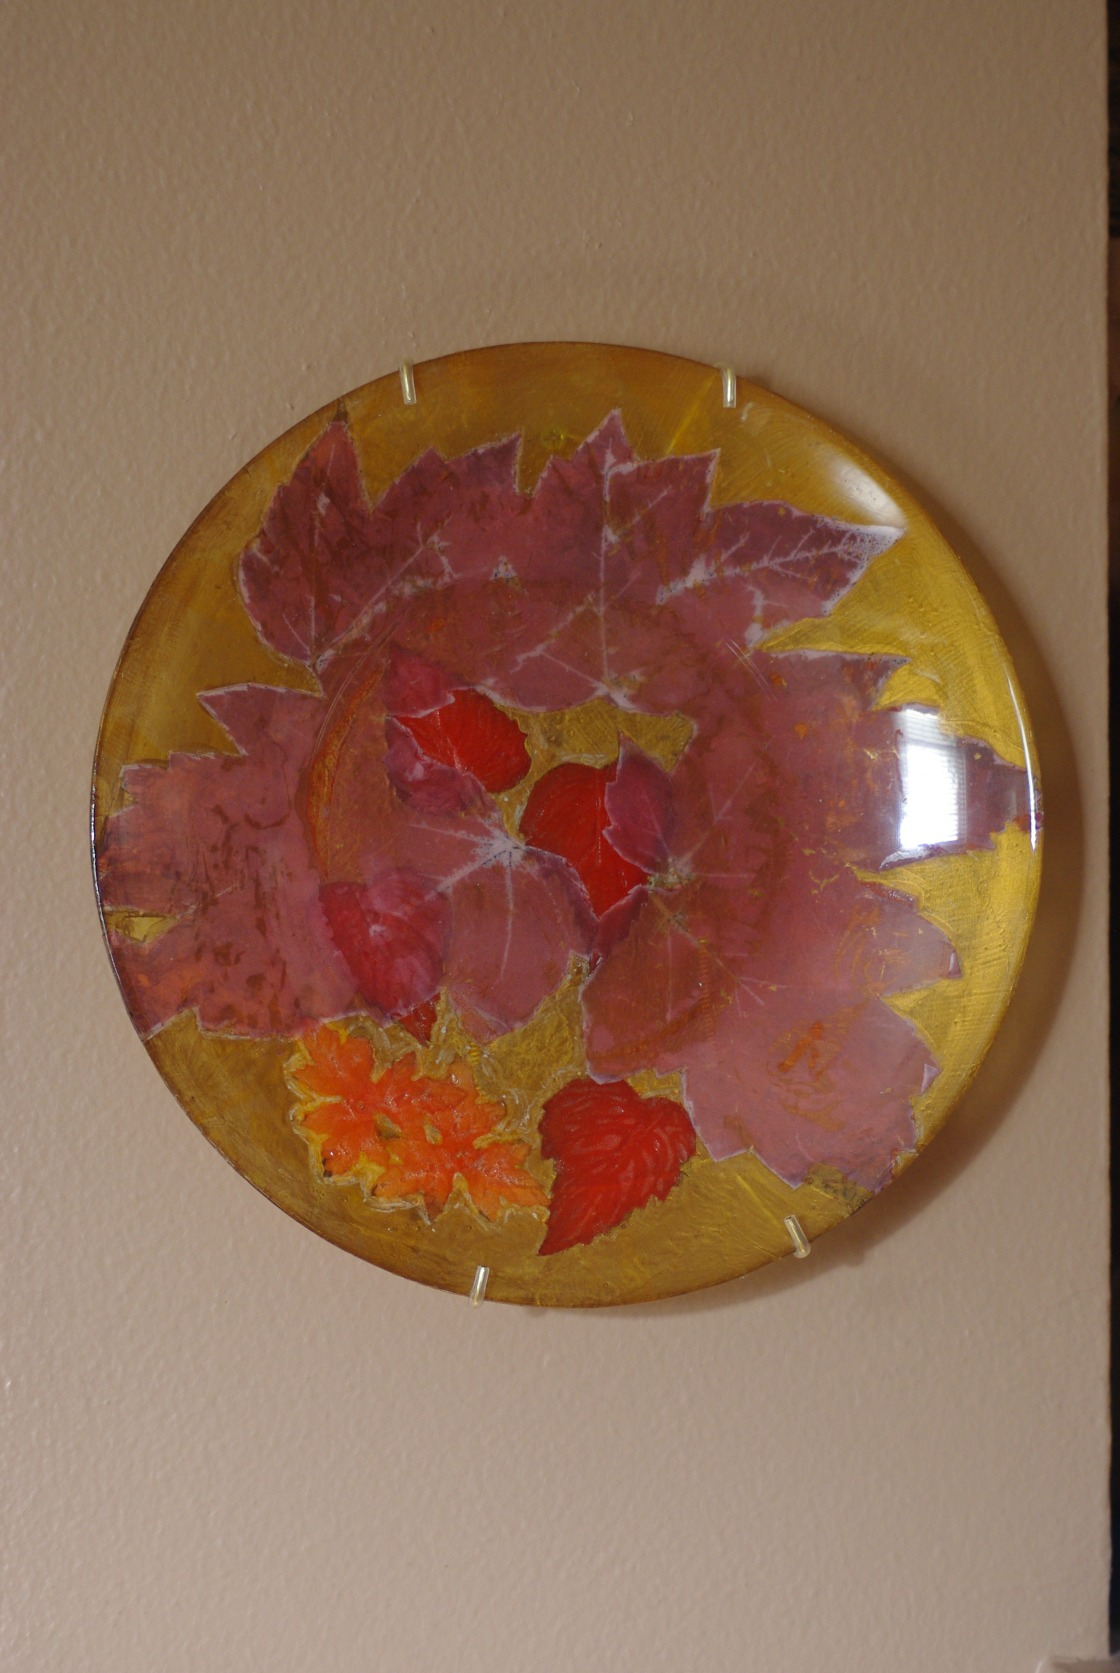 Decorated a cheap glass plate with leaf transfers and silk leaves.  The background is yellow tissue paper.